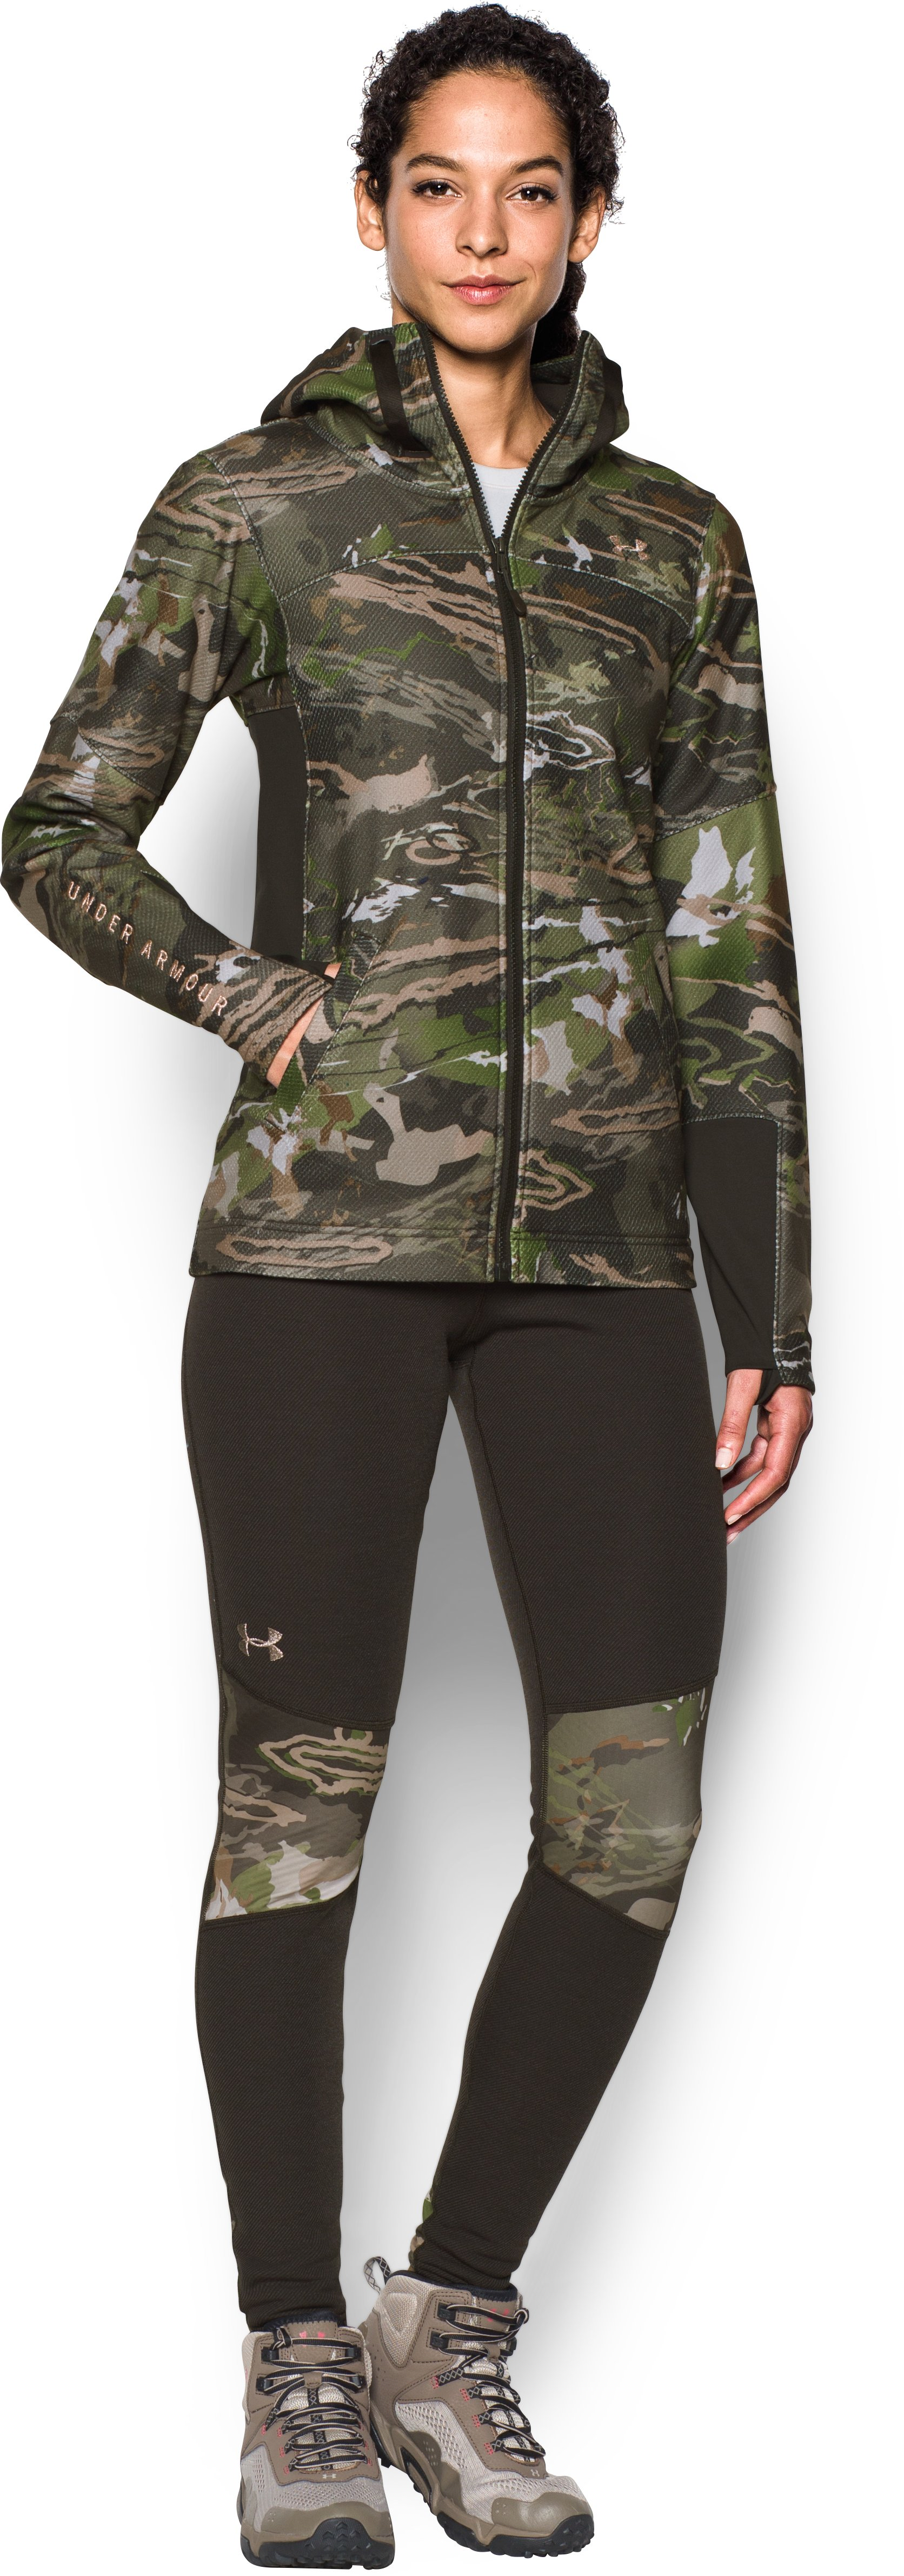 Women's  UA Early Season Full Zip Hoodie, RIDGE REAPER® FOREST